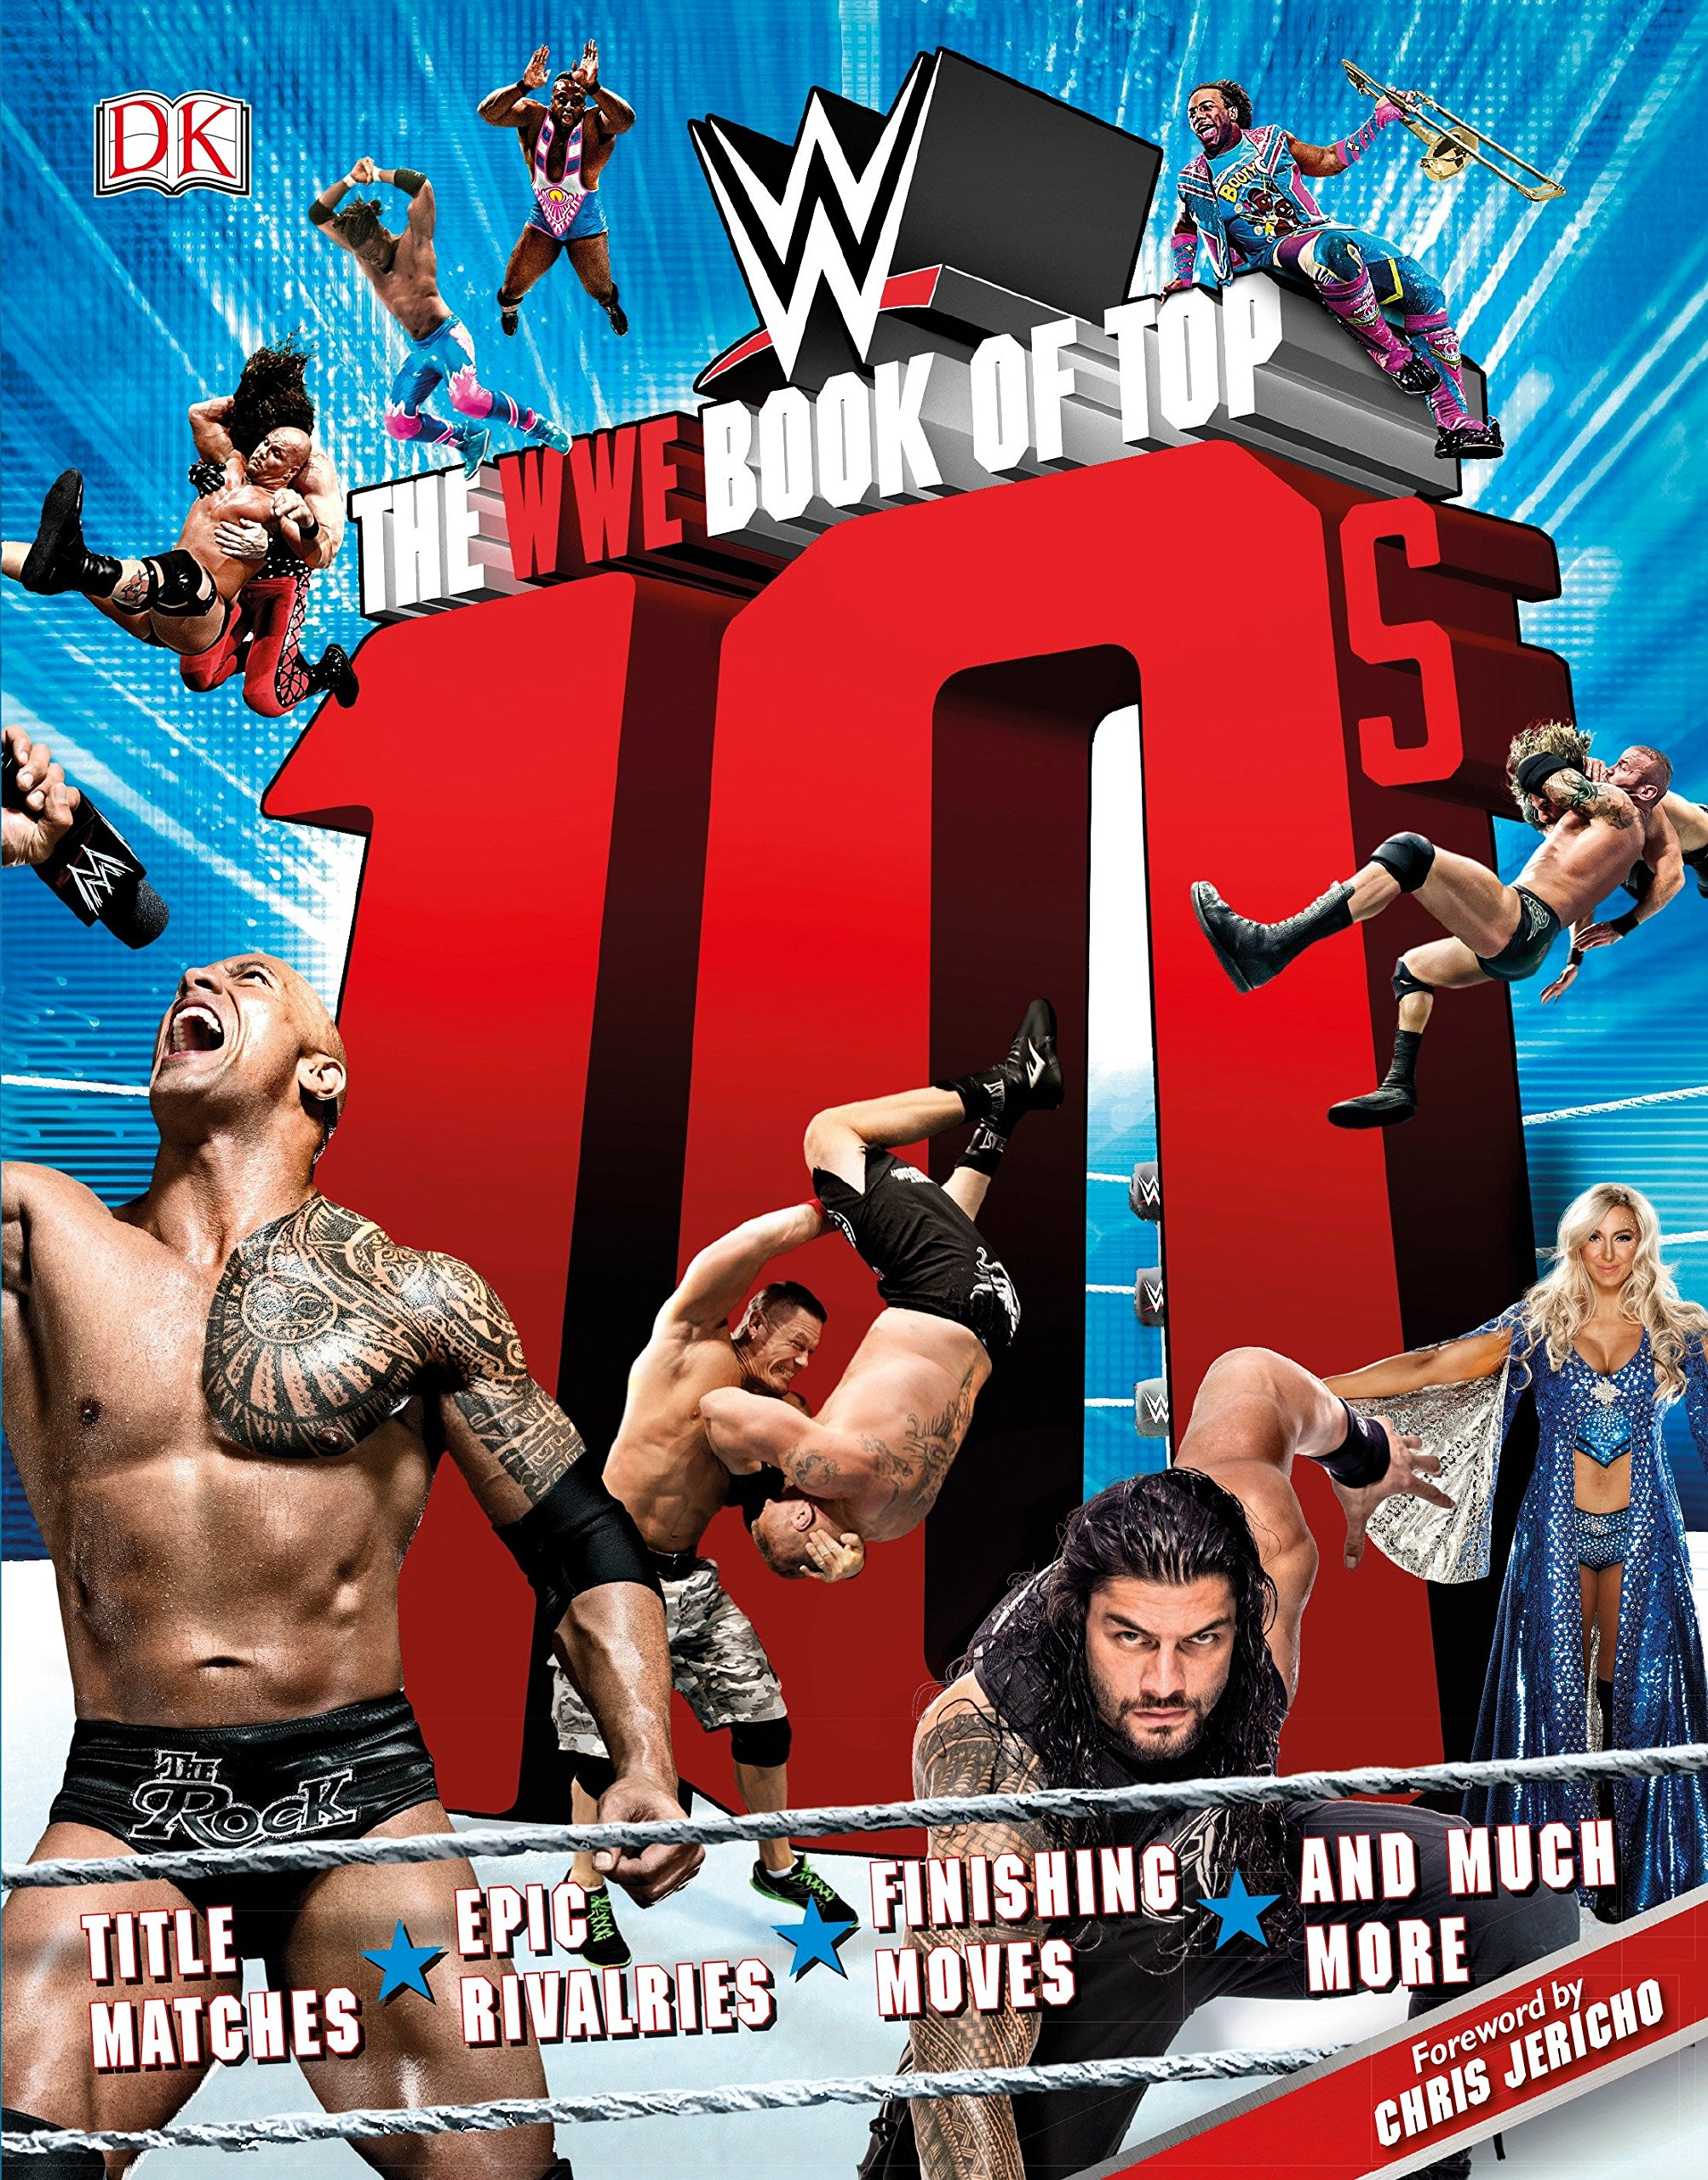 The WWE Book of Top 10s Paperback – May 9, 2017 Dean Miller Chris Jericho DK 1465462643